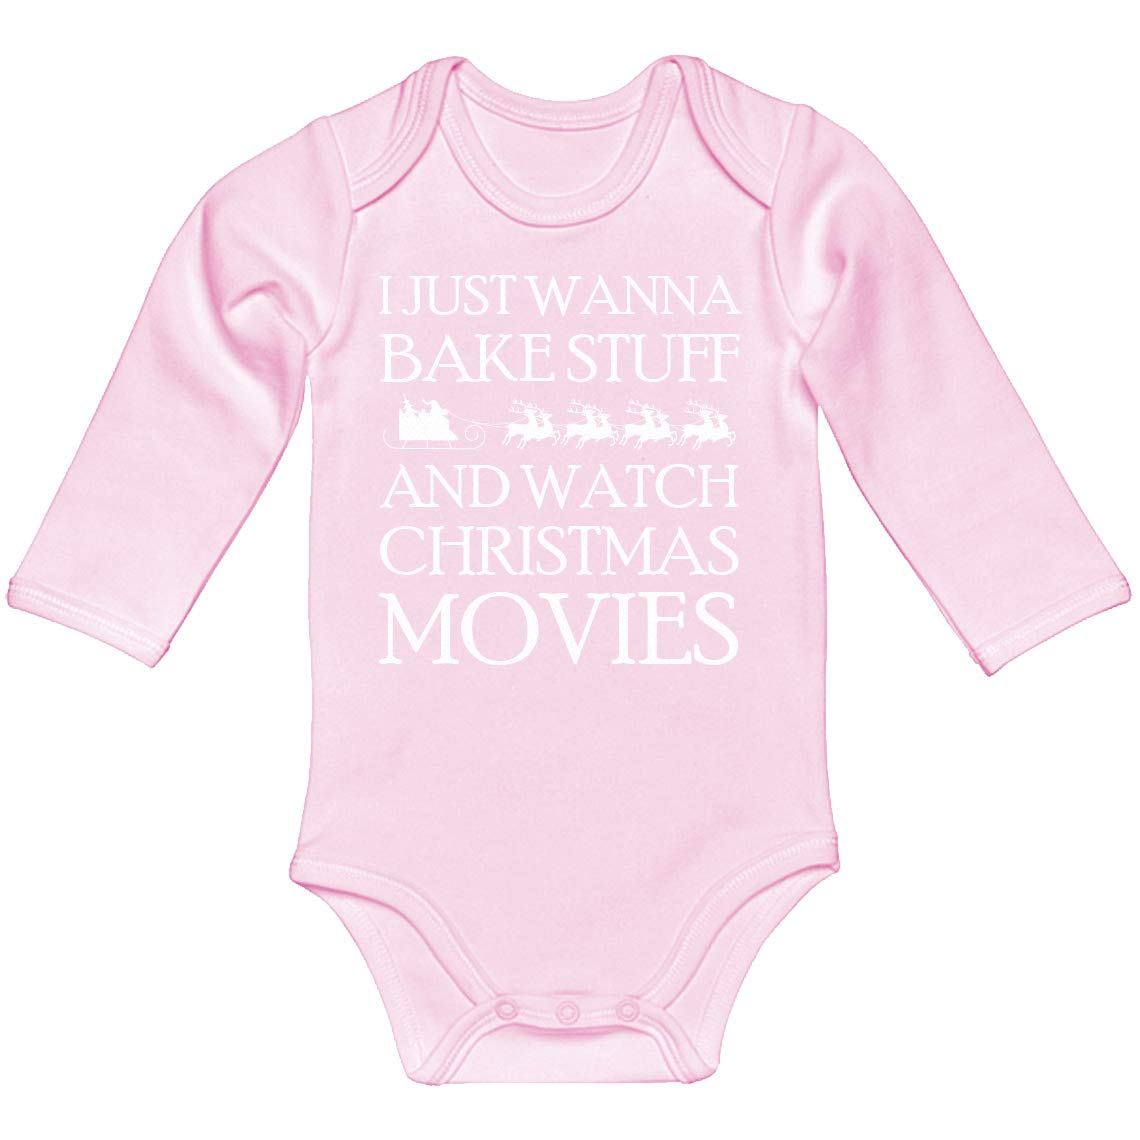 Baby Onesie Bake Stuff Christmas Movies 100/% Cotton Long Sleeve Infant Bodysuit